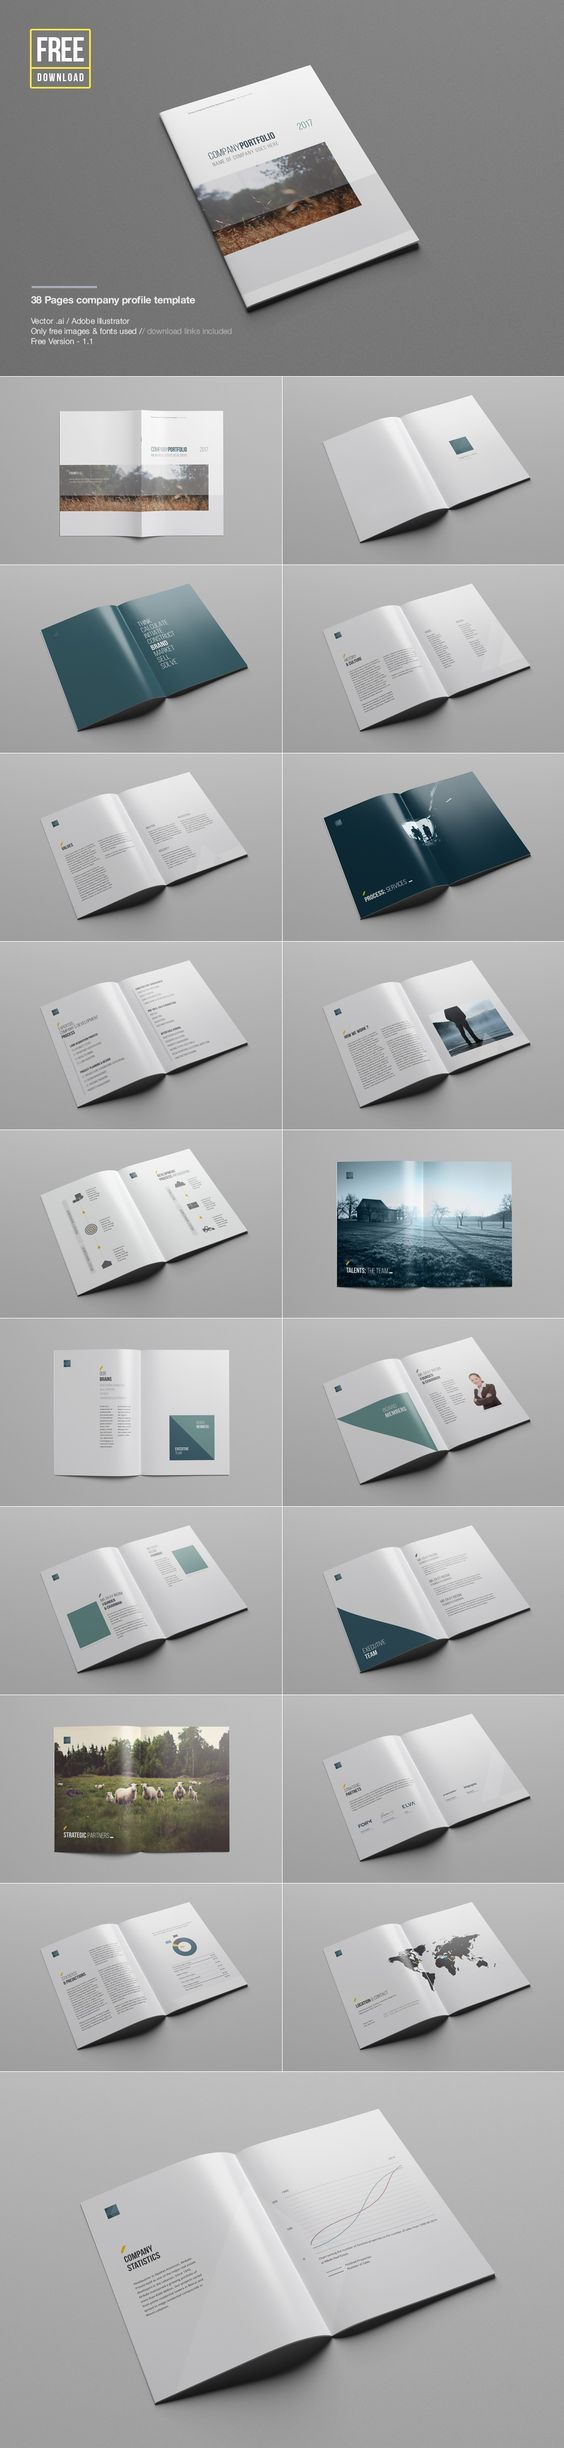 Free Download - Company Profile Template - Brochure - Magazine - Pamphlet - Catalog - Mockup: